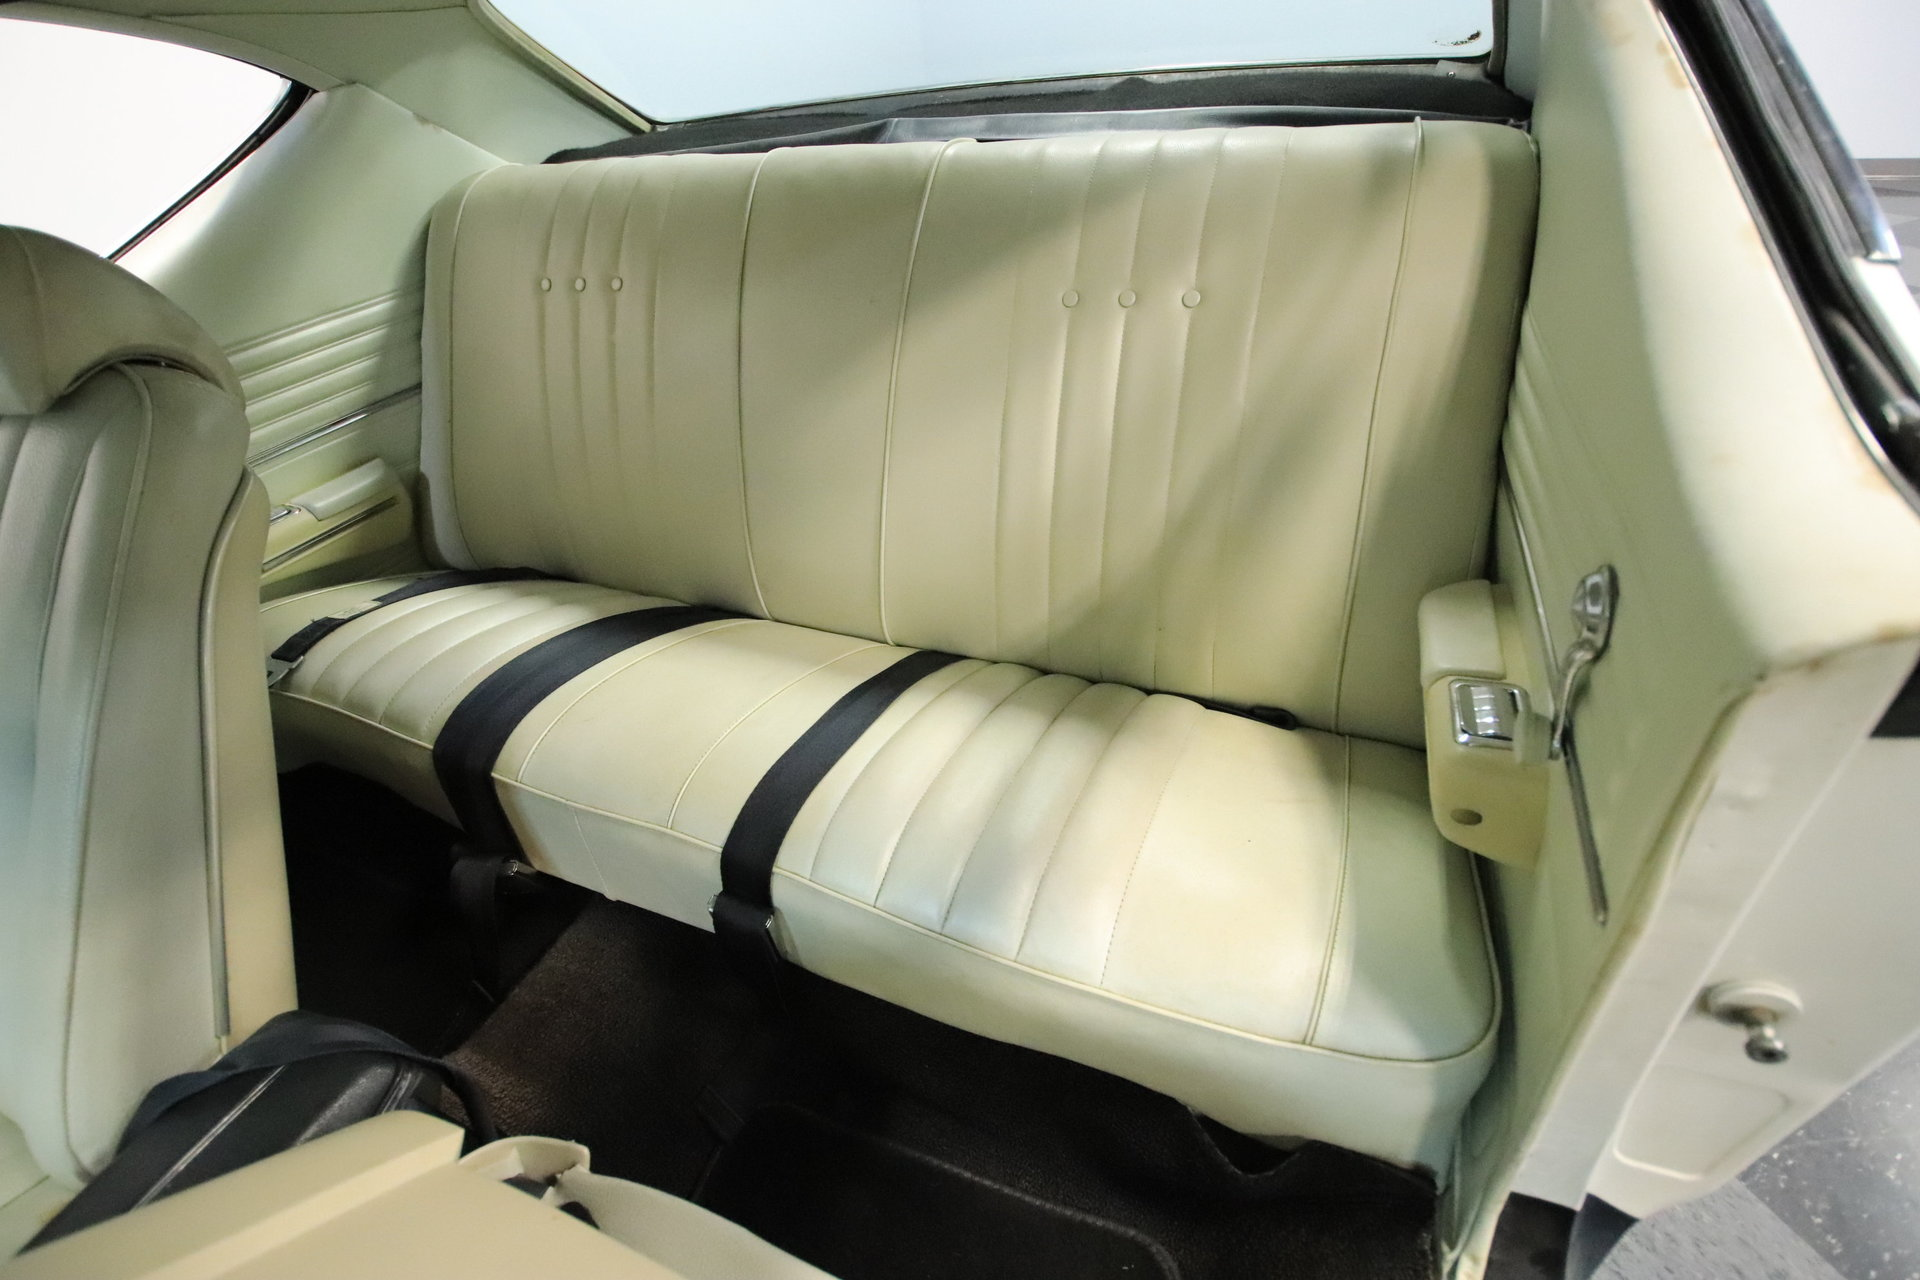 1968 Chevrolet Chevelle Ss 396 For Sale 100303 Mcg Chevy Seat Belt